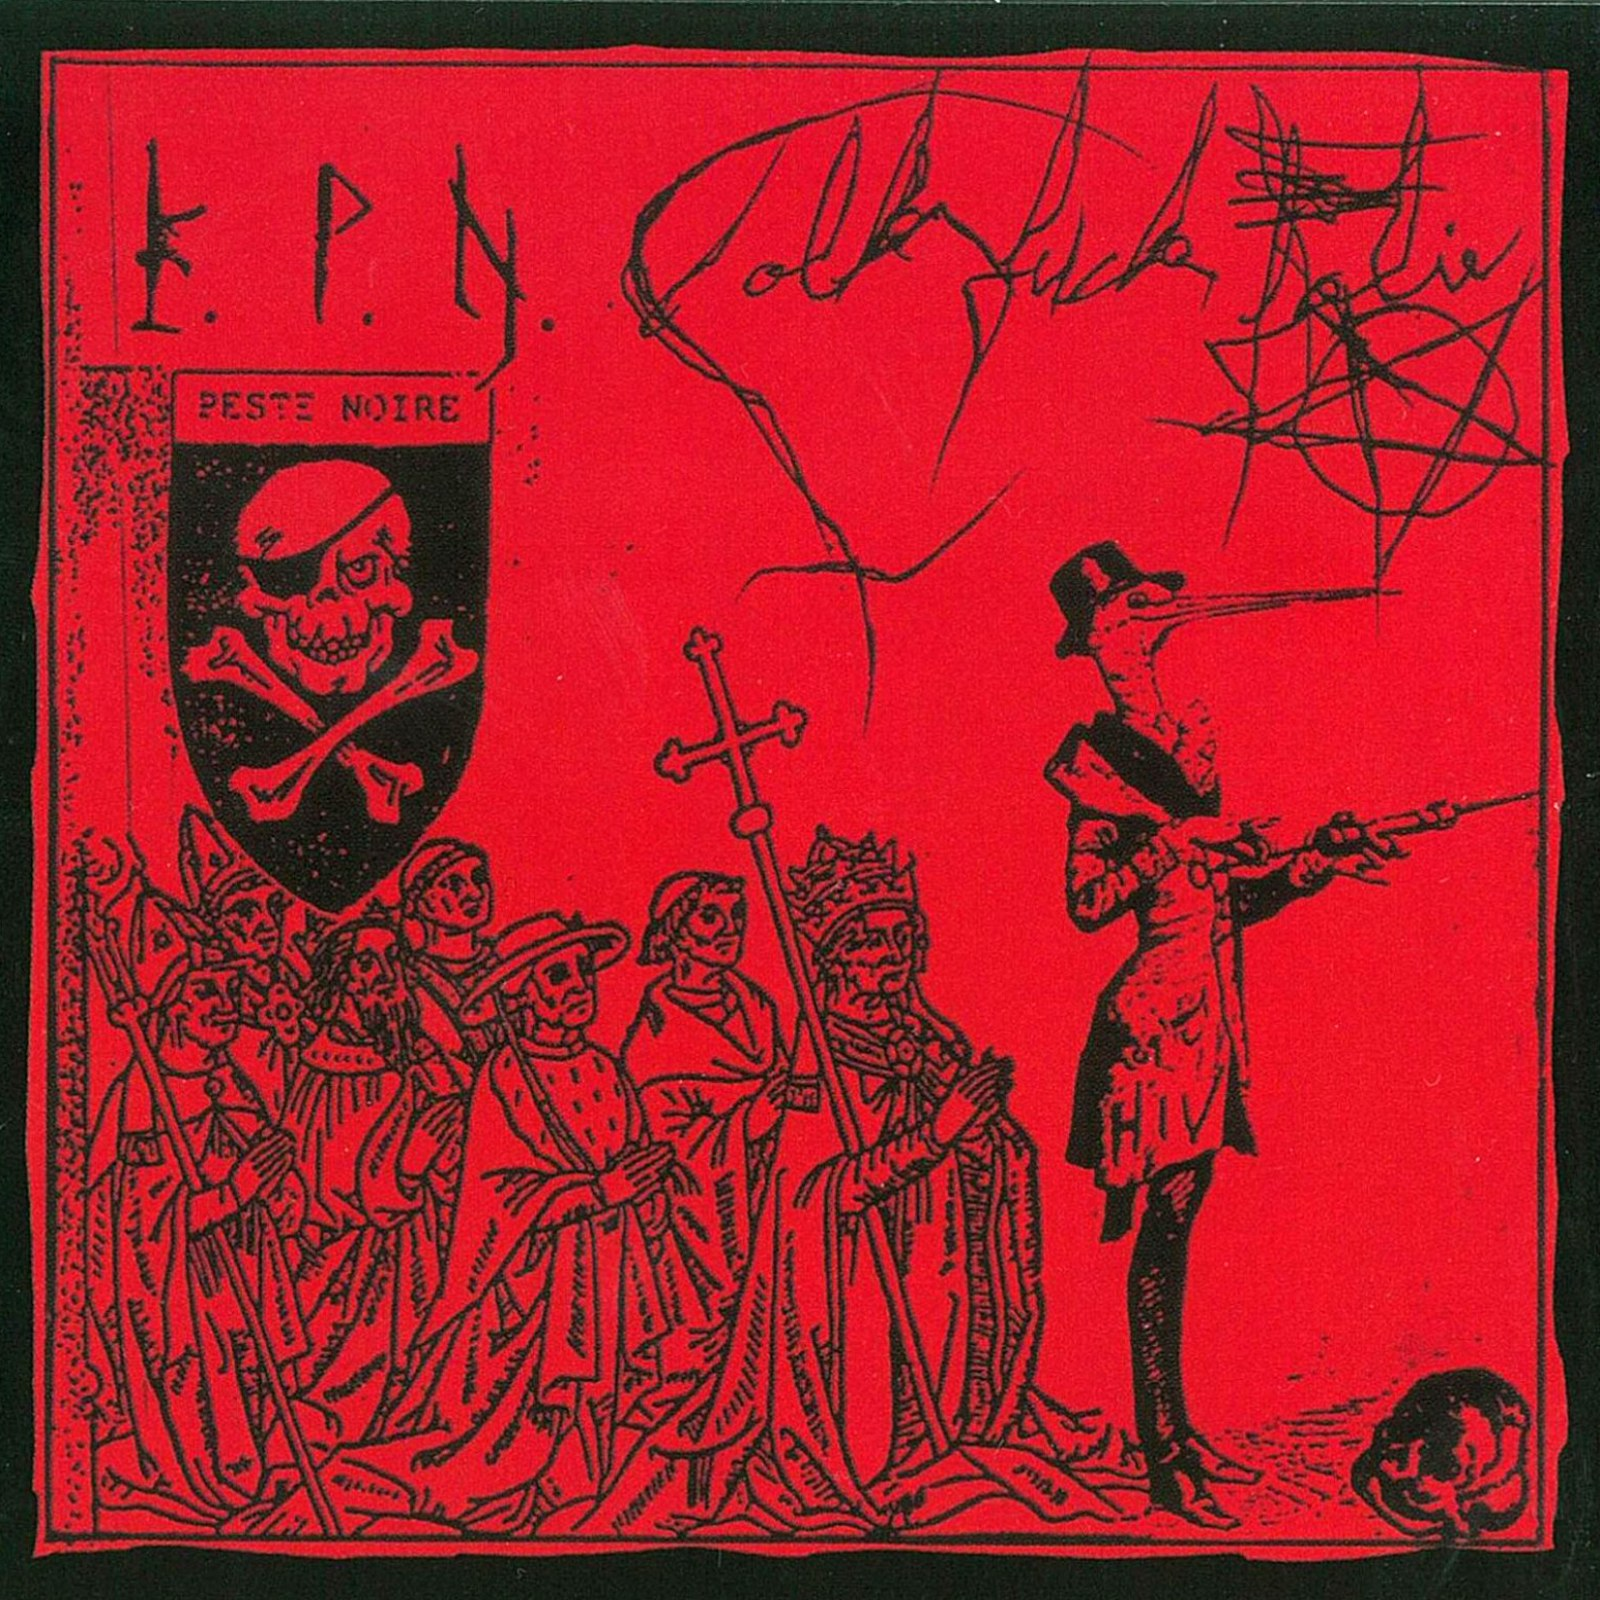 Review for Peste Noire - Folkfuck Folie